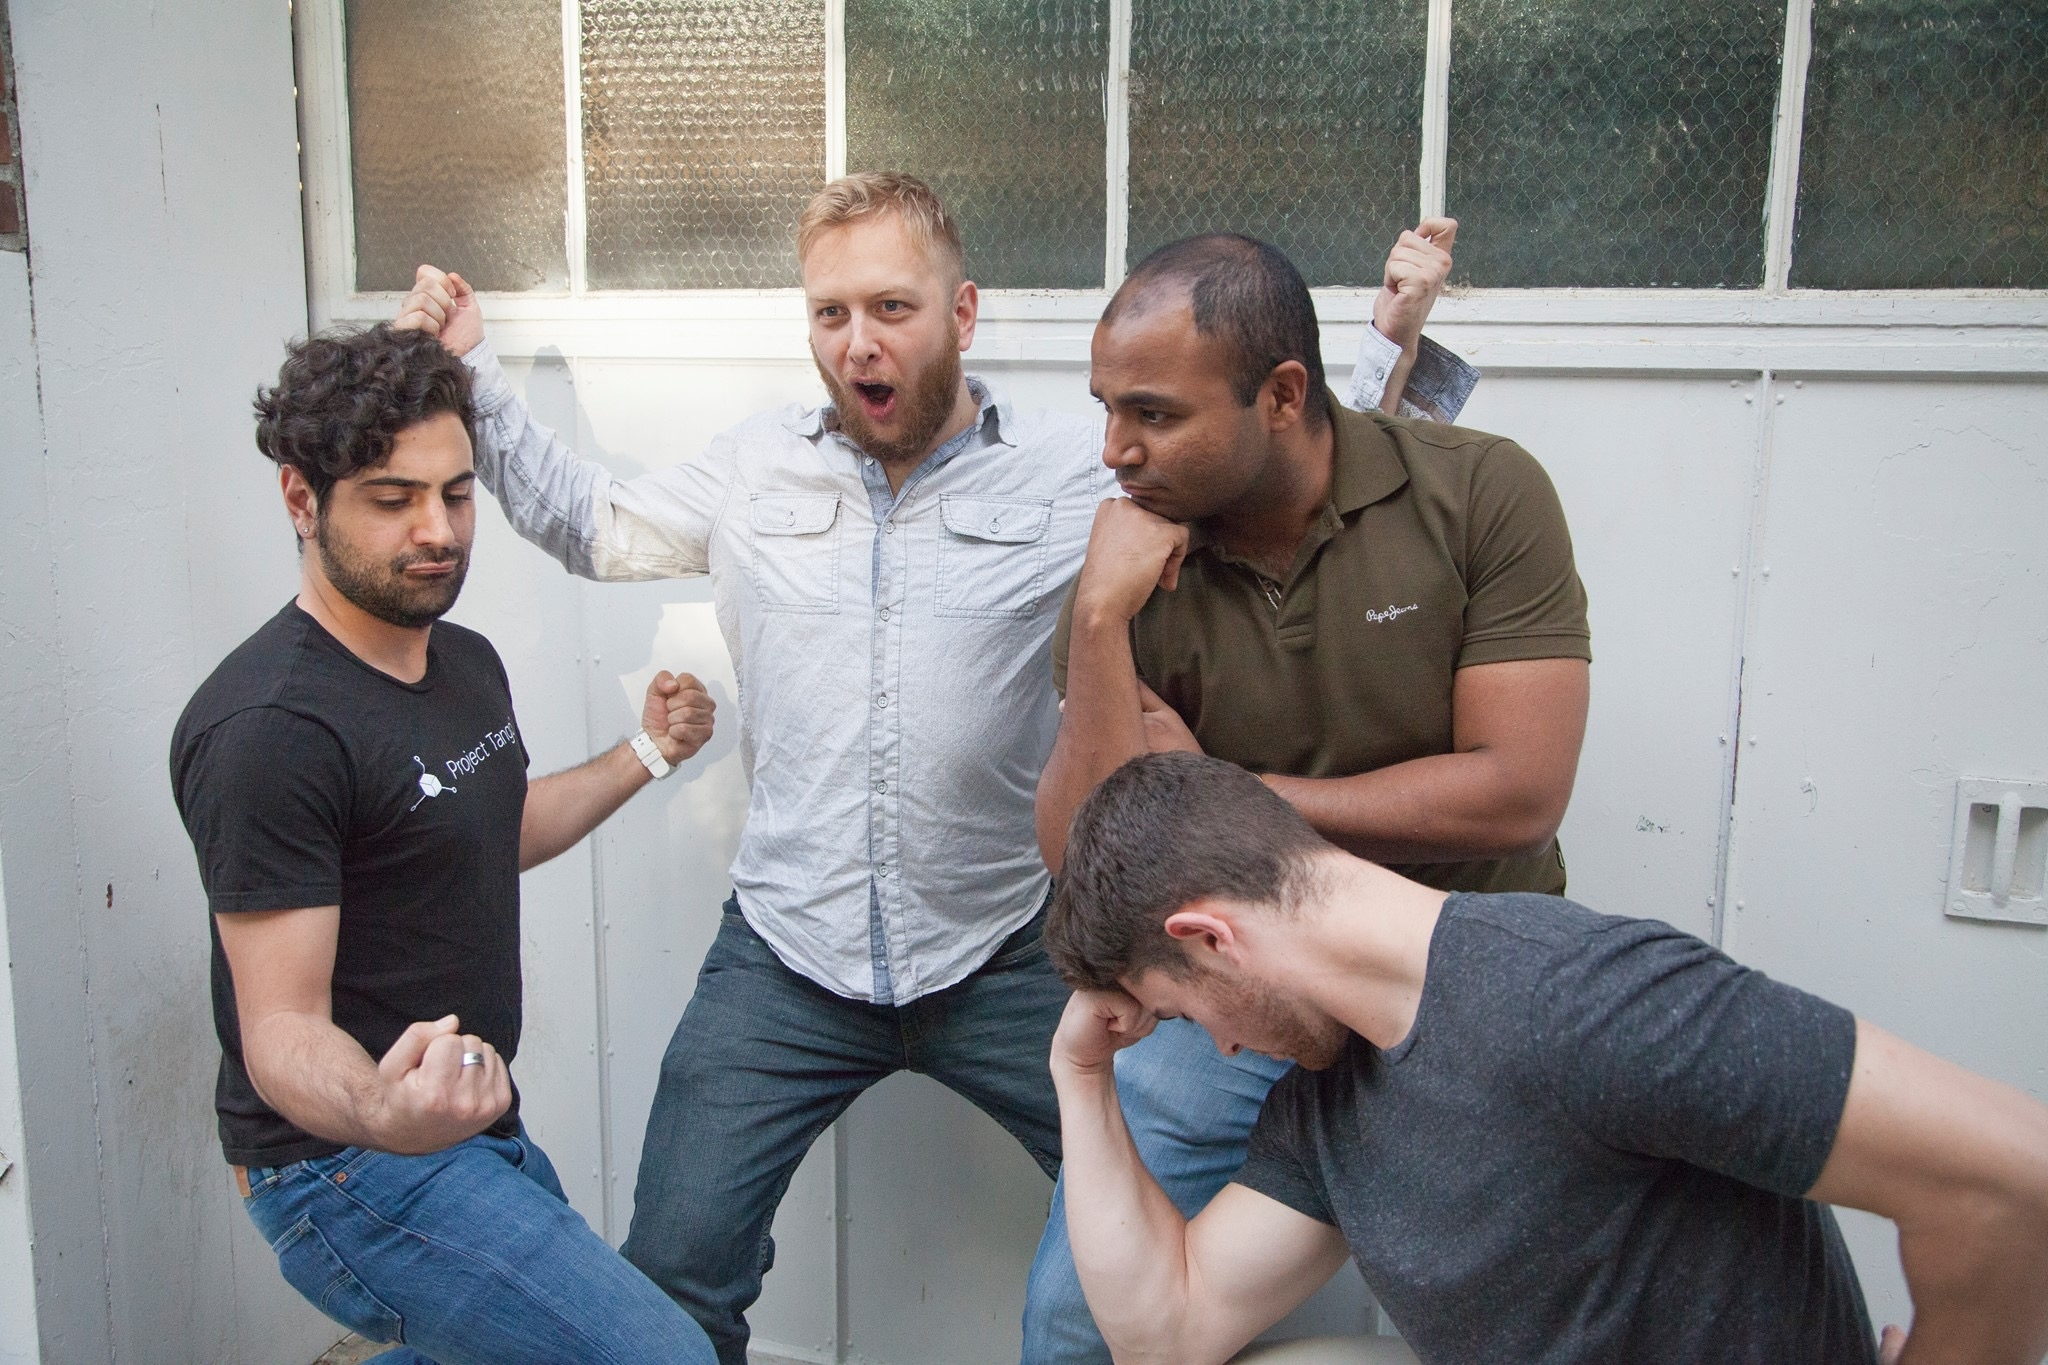 The Redline Team(from left to right): Nima Zeighami, Jesse Comb, Tausif Ahmed, and Michael O'keefe. Not pictured: Eliot Hemingway and Bradley Hawkins.